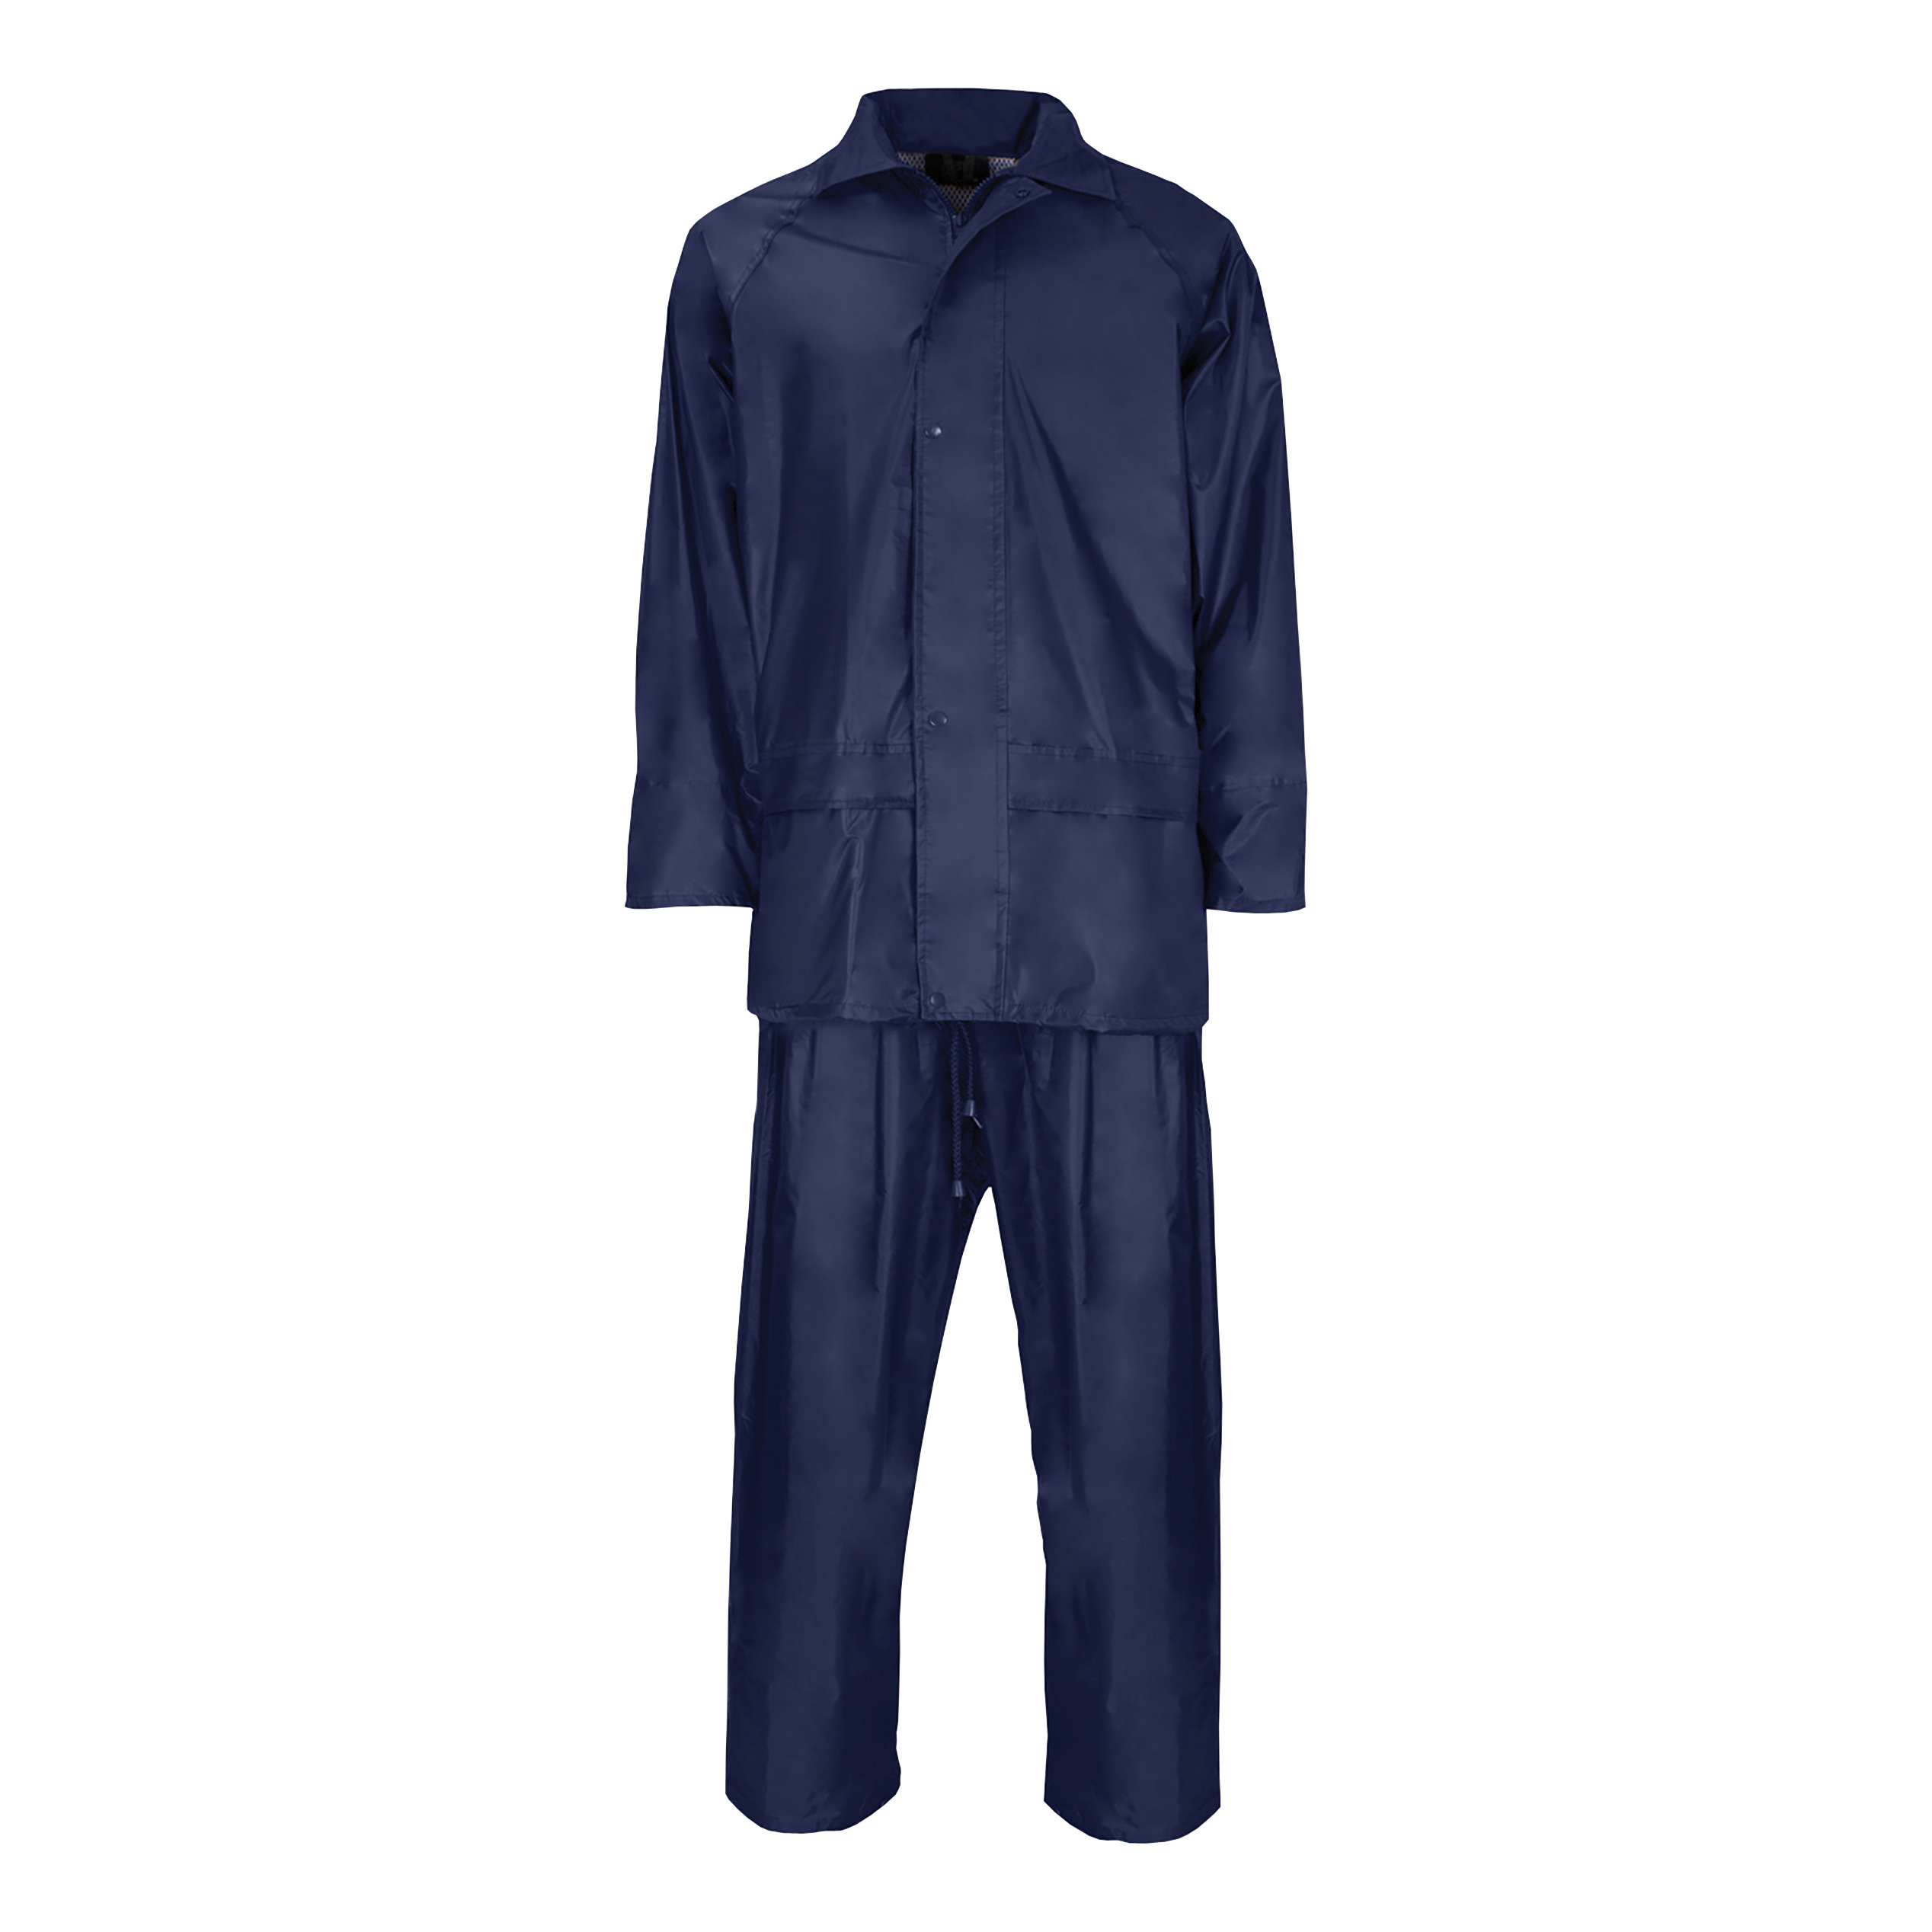 Rainsuit Poly/PVC with Elasticated Waisted Trousers XL Navy Ref NBDSNXL *Approx 3 Day Leadtime*